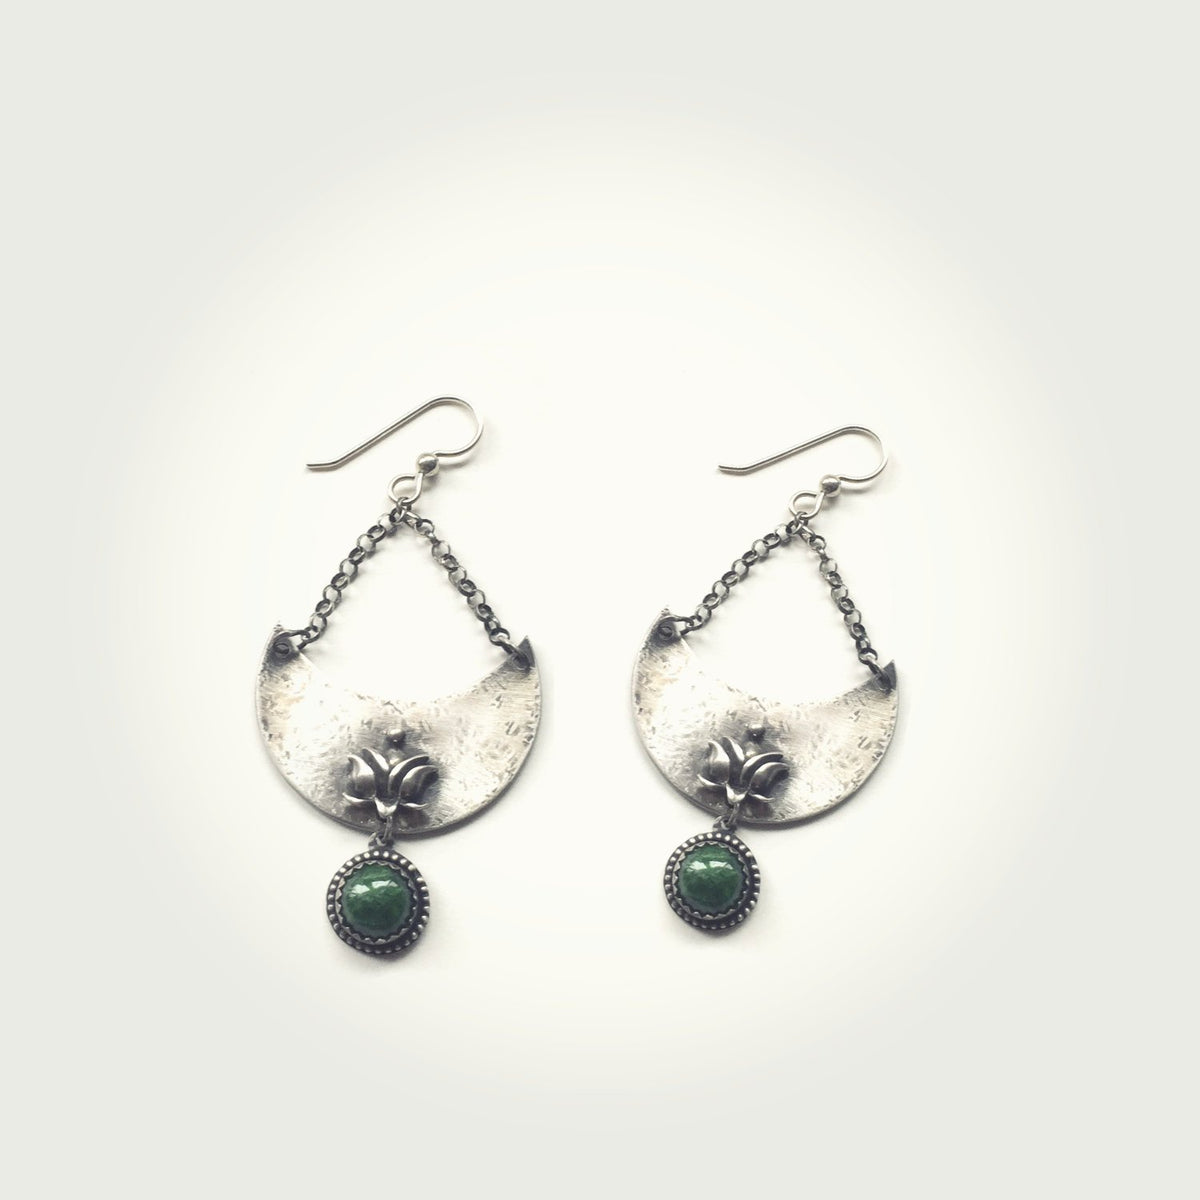 Crescent Moon and Lotus Earrings with Chrome Diopside